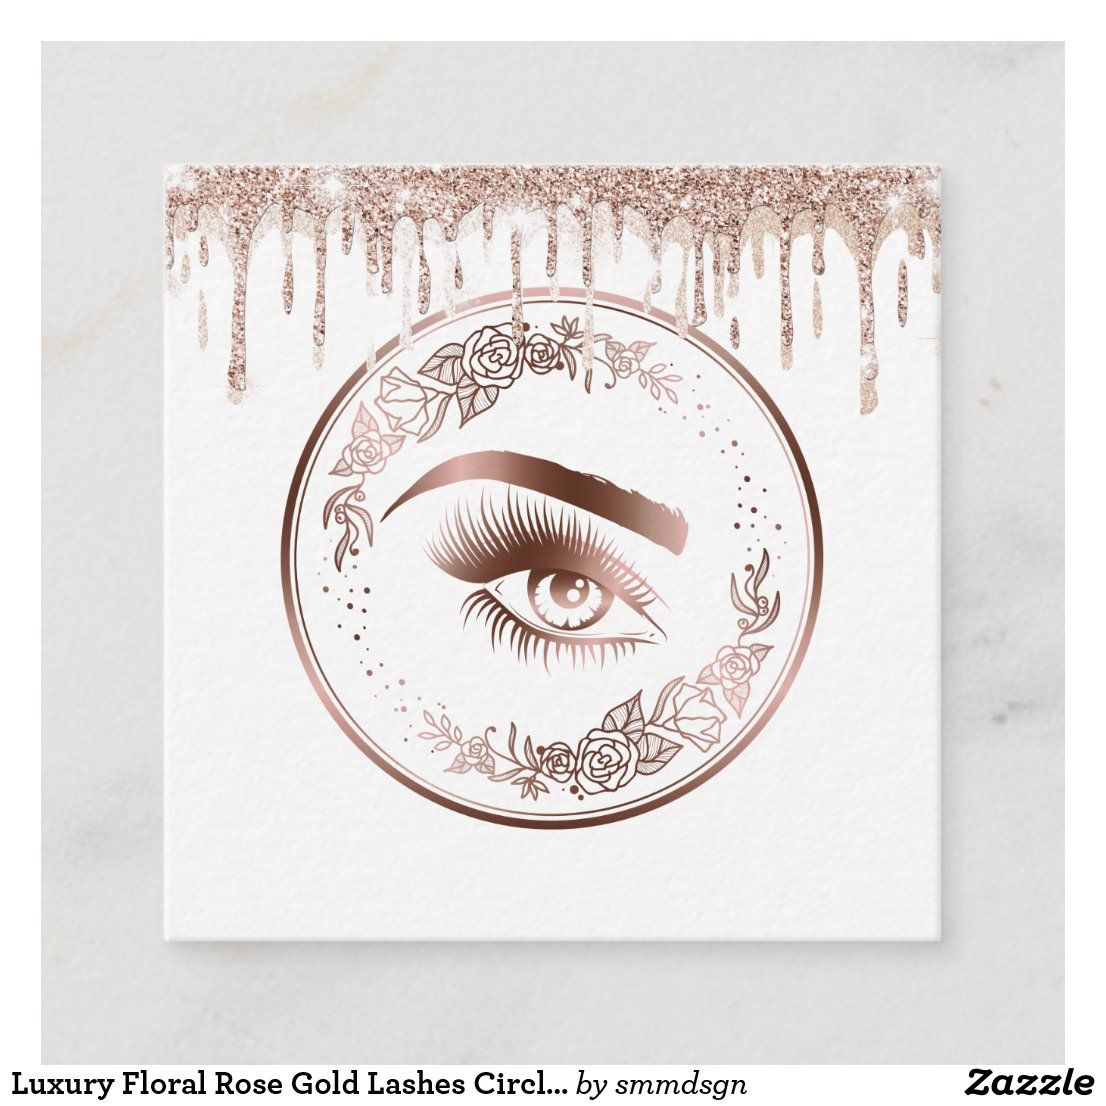 Photo of Luxury Floral Rose Gold Lashes Circle Eyes Brows Square Business Card | Zazzle.com